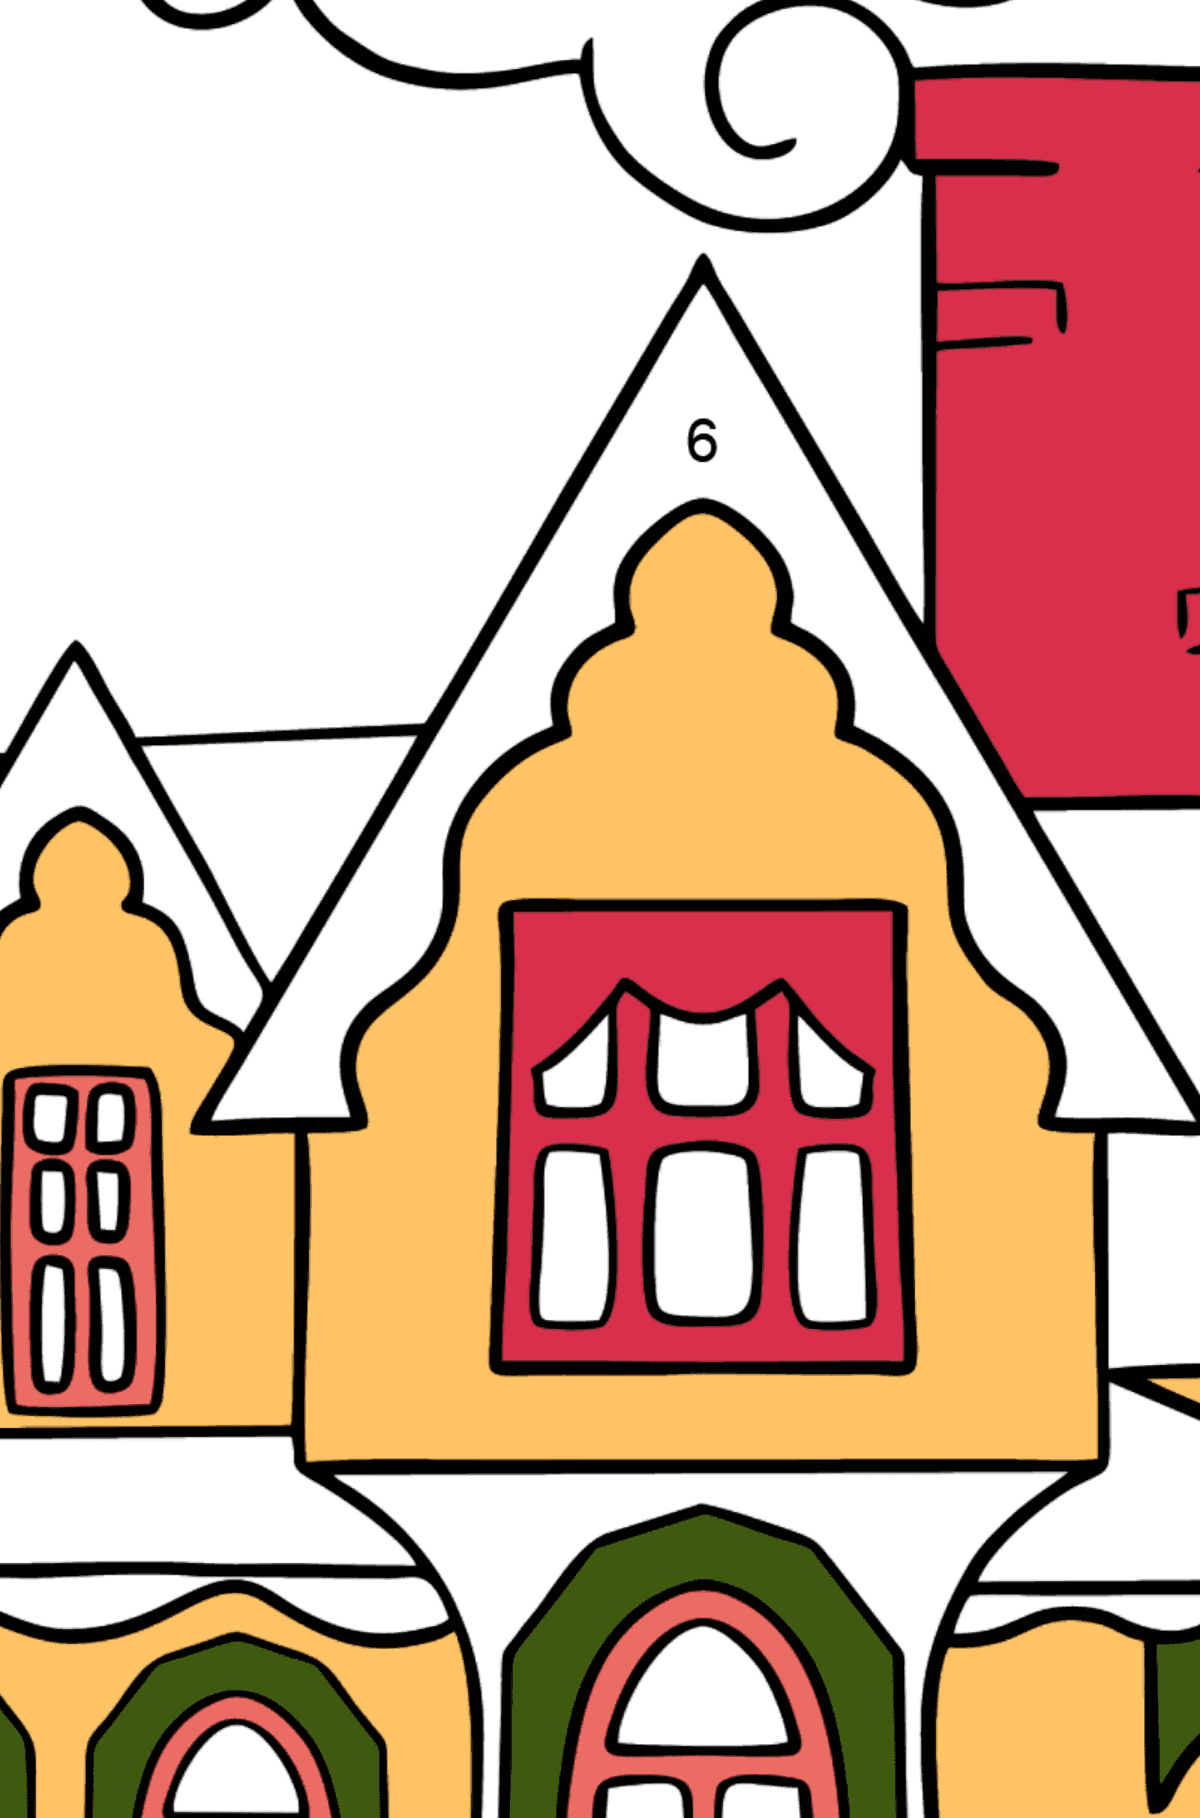 Simple Coloring Page - A Miraculous House - Coloring by Numbers for Kids